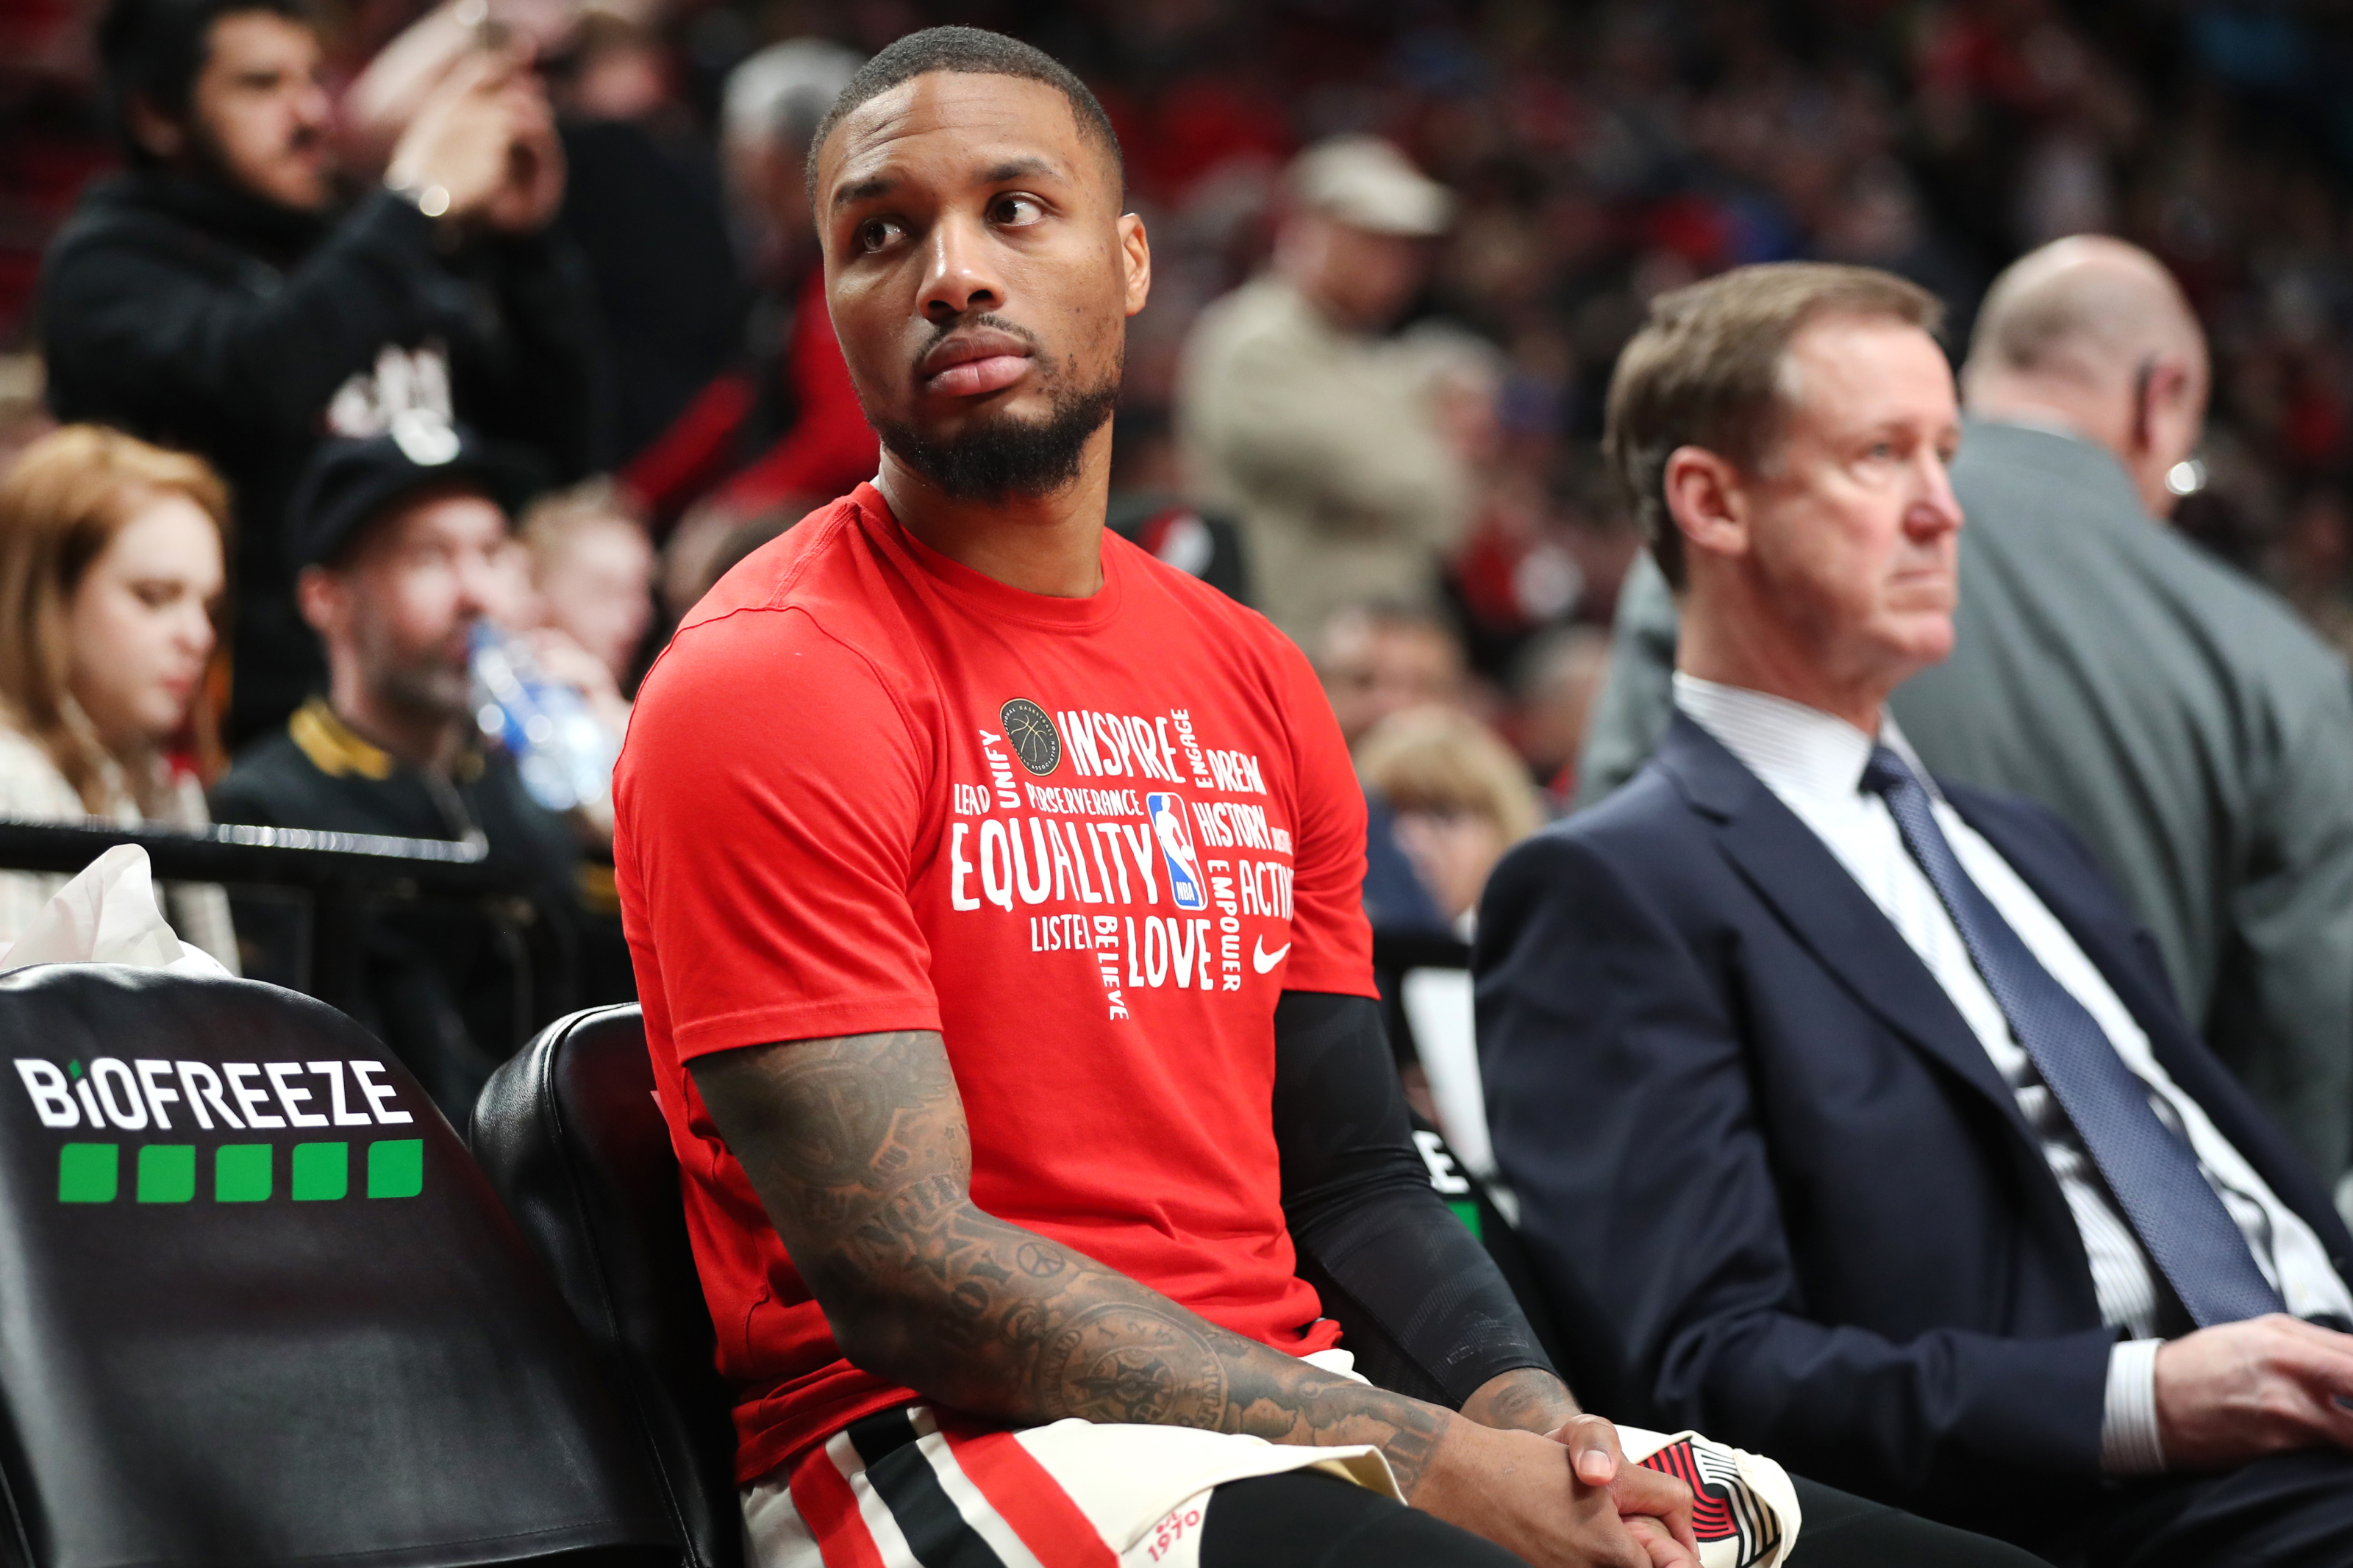 3 adjustments the Trail Blazers need to make to close out the season